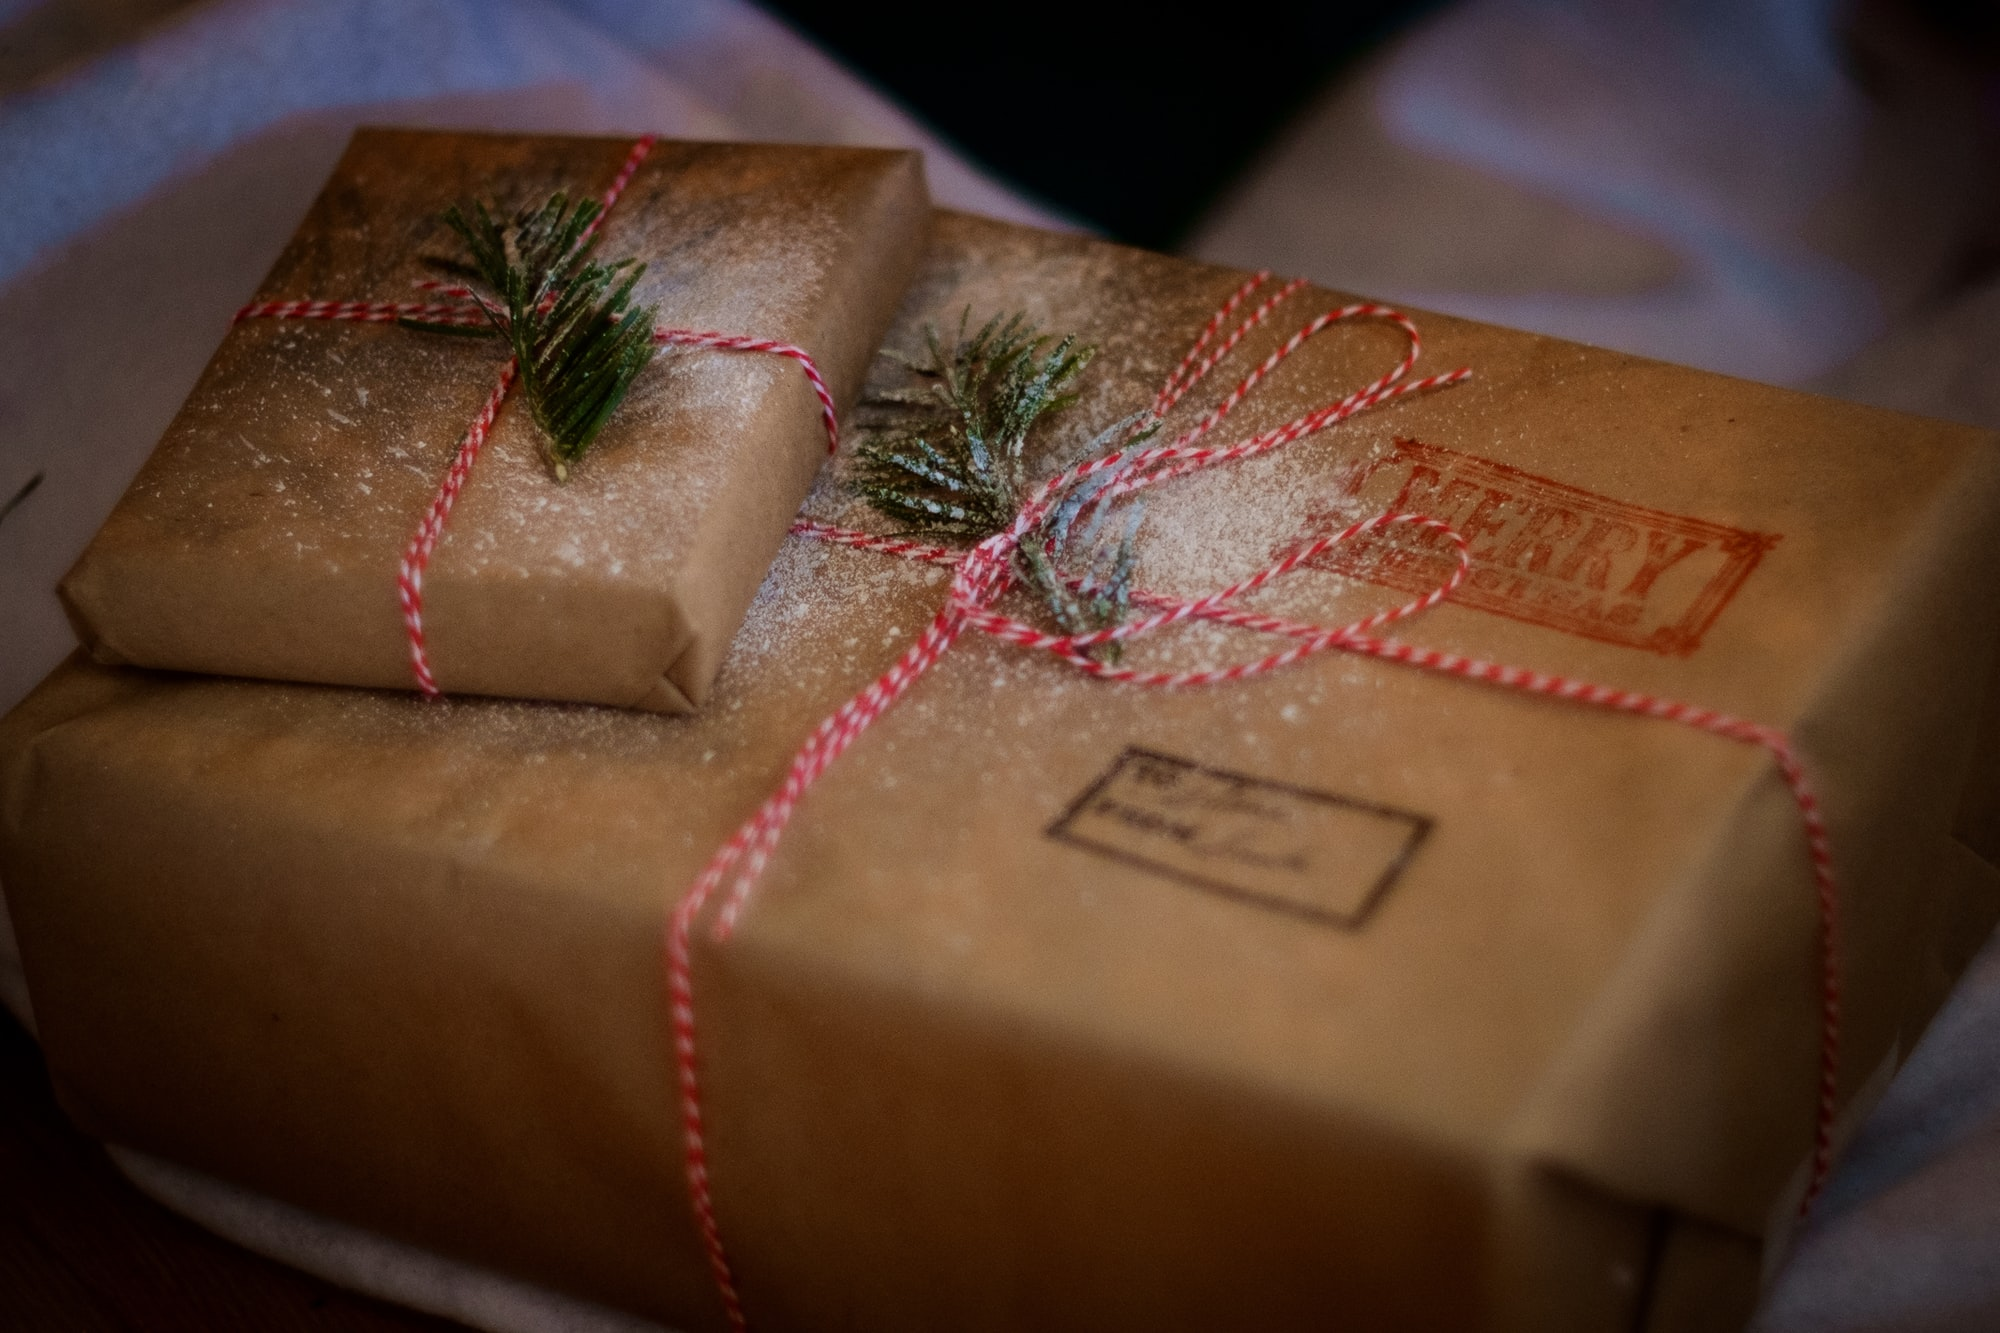 """One year I perhaps went a bit """"extra"""" on the holiday secret Santa gift wrapping. I don't regret anything. As it turns out butcher paper and twine make absolutely perfect gift wrap with the right adjustments."""